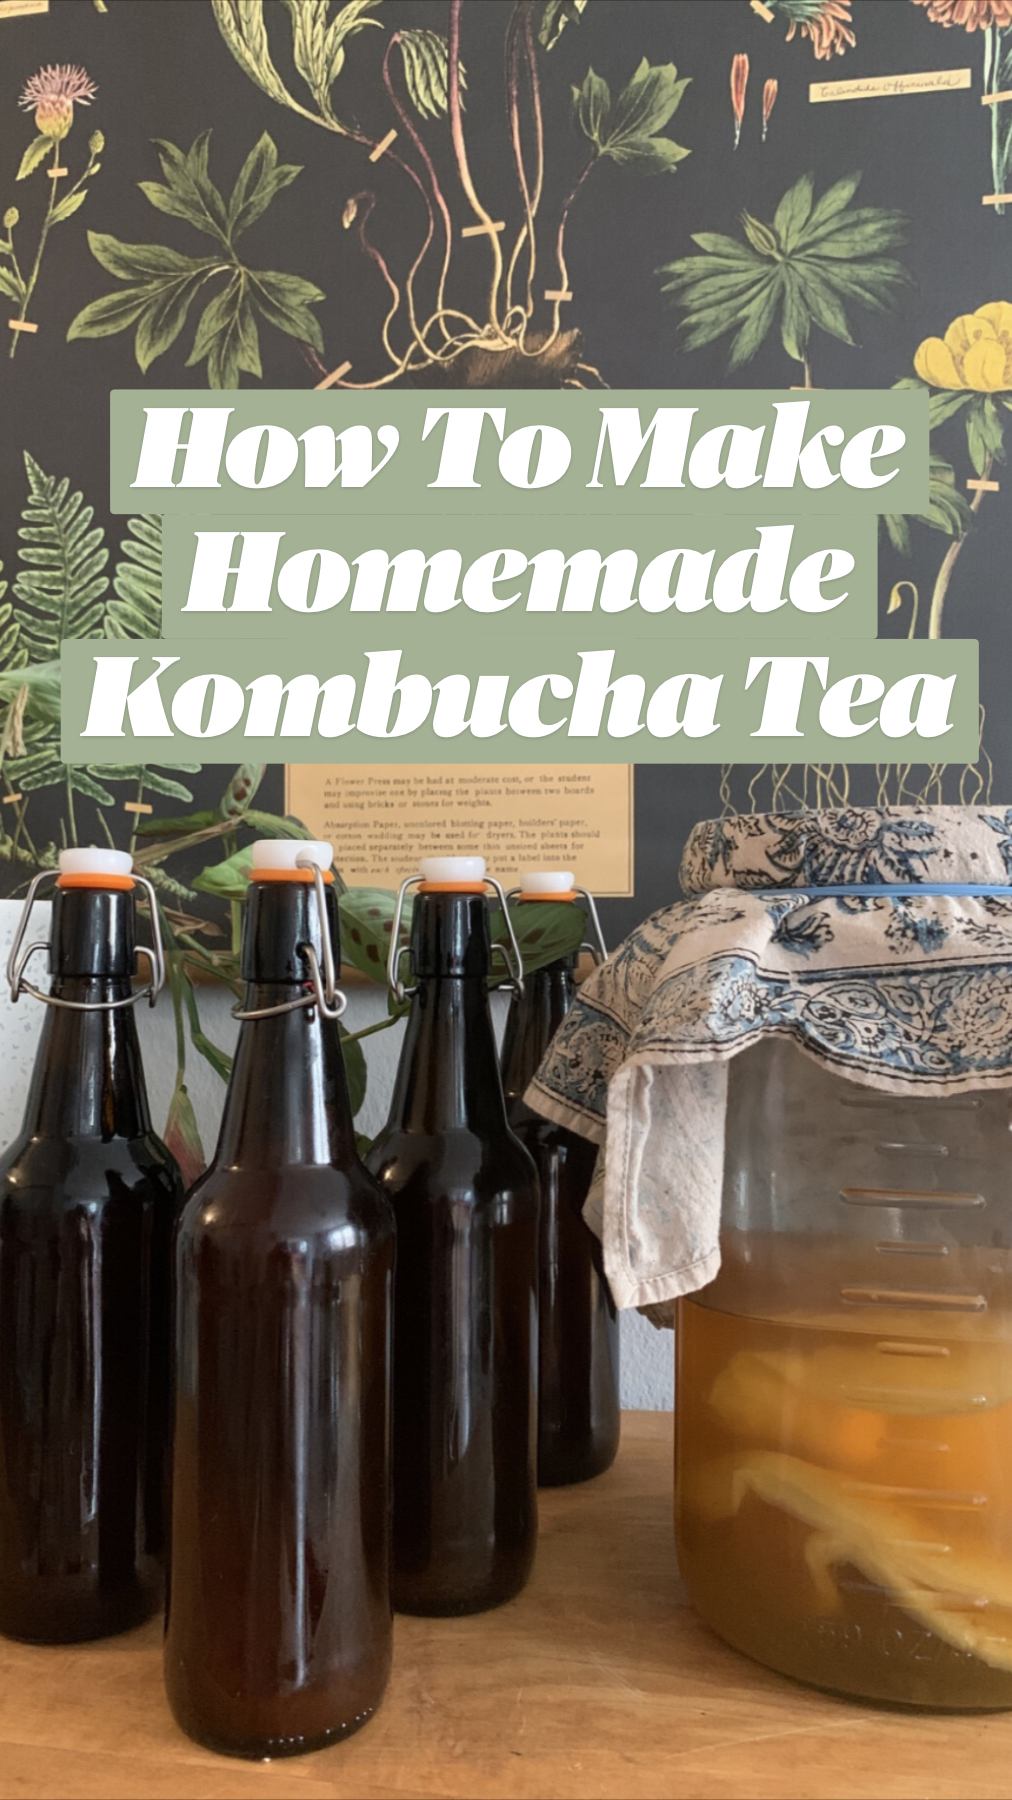 How To Make Homemade Kombucha Tea